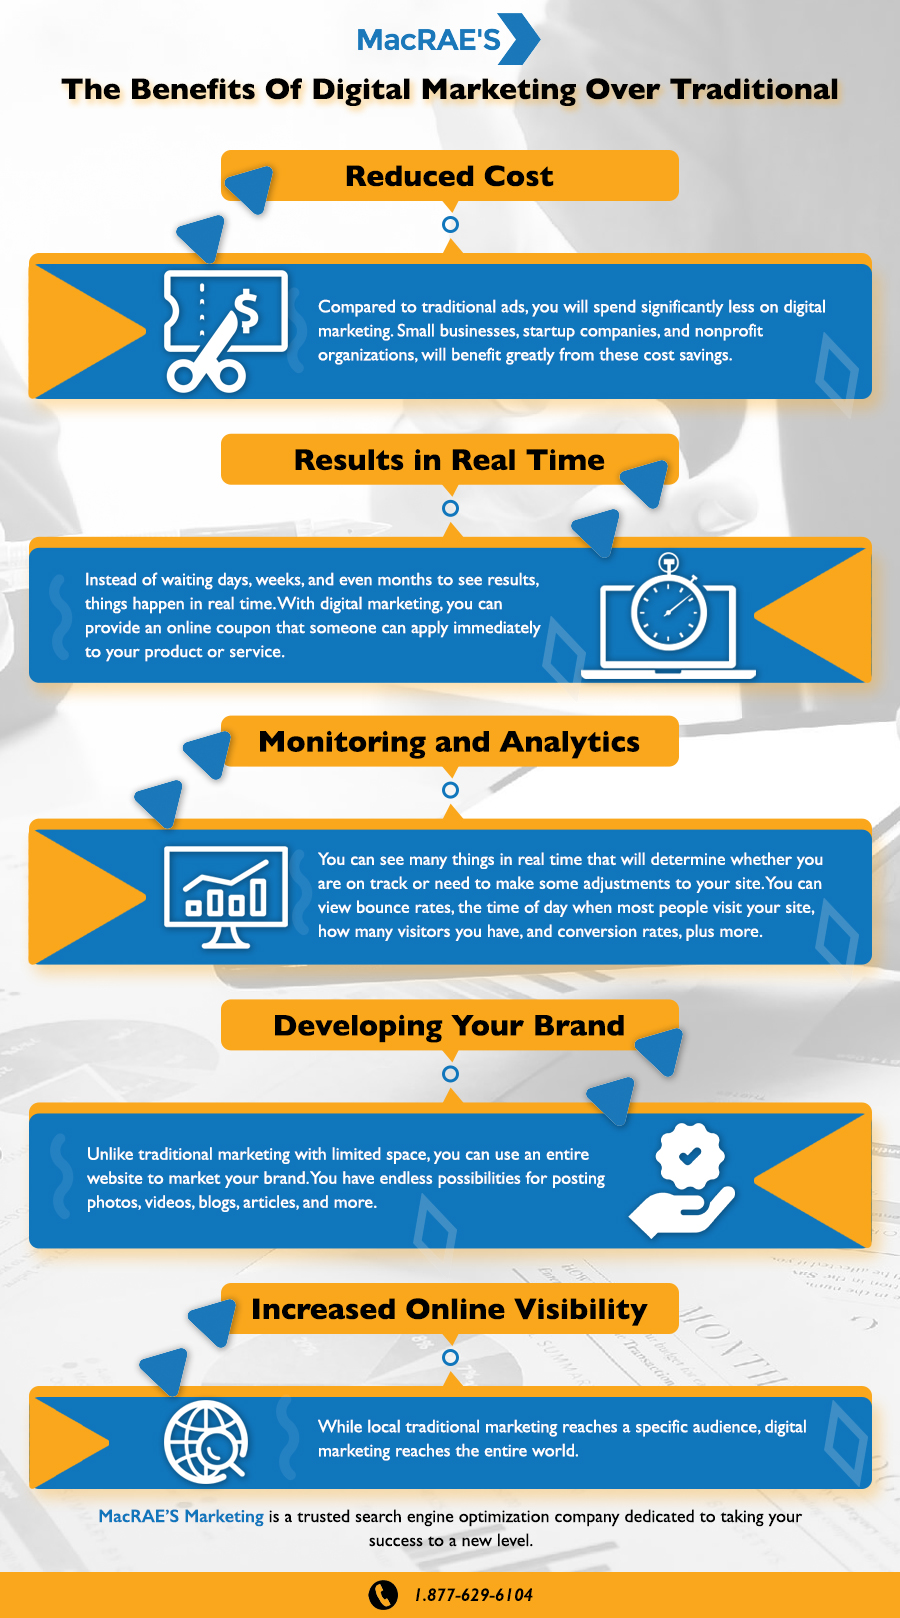 The Benefits of Digital Marketing over Traditional